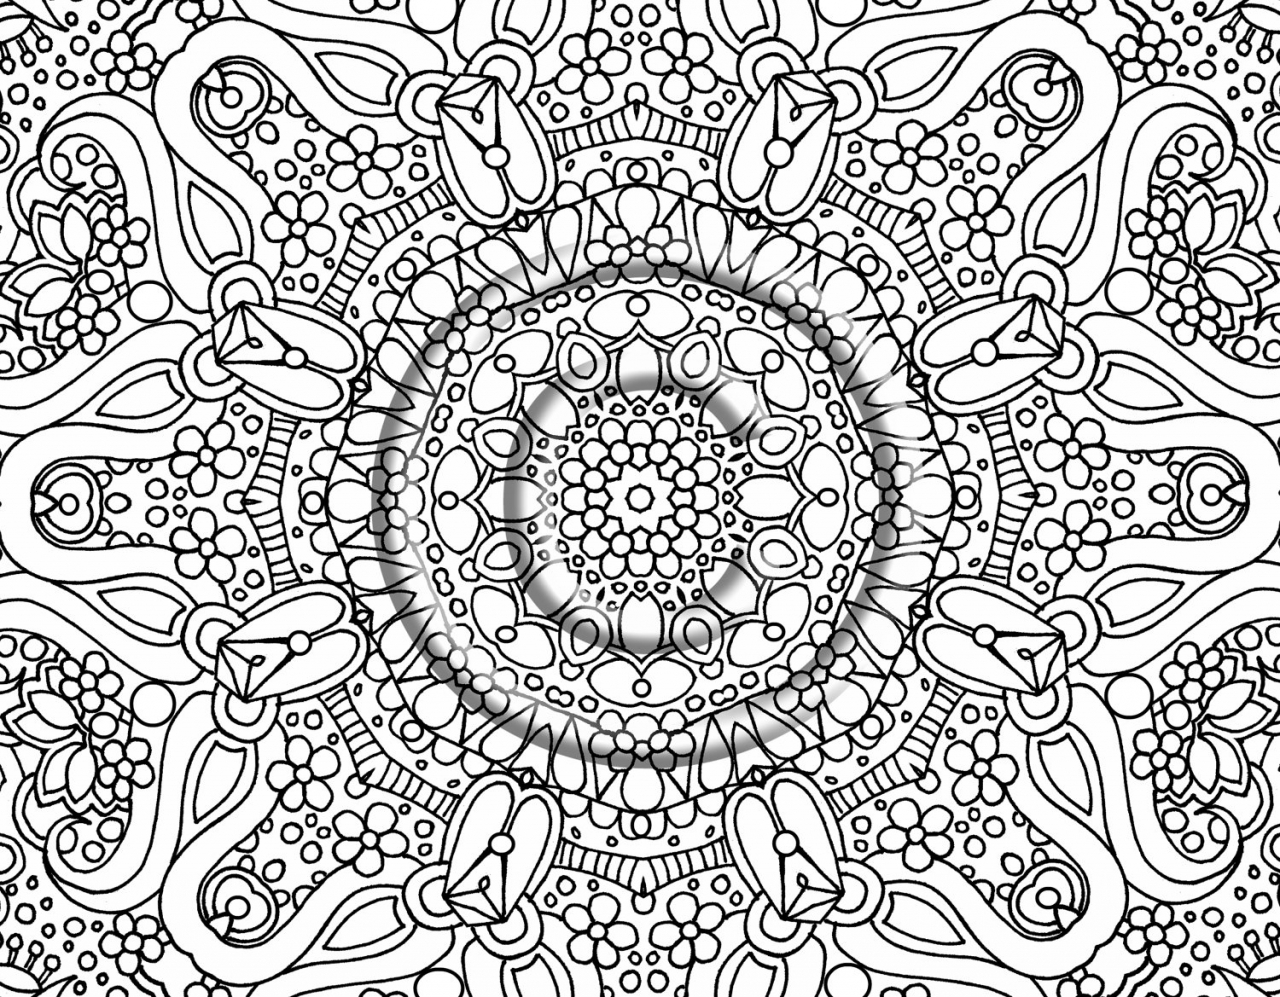 grown up coloring pages - get this difficult coloring pages for grown ups 61829